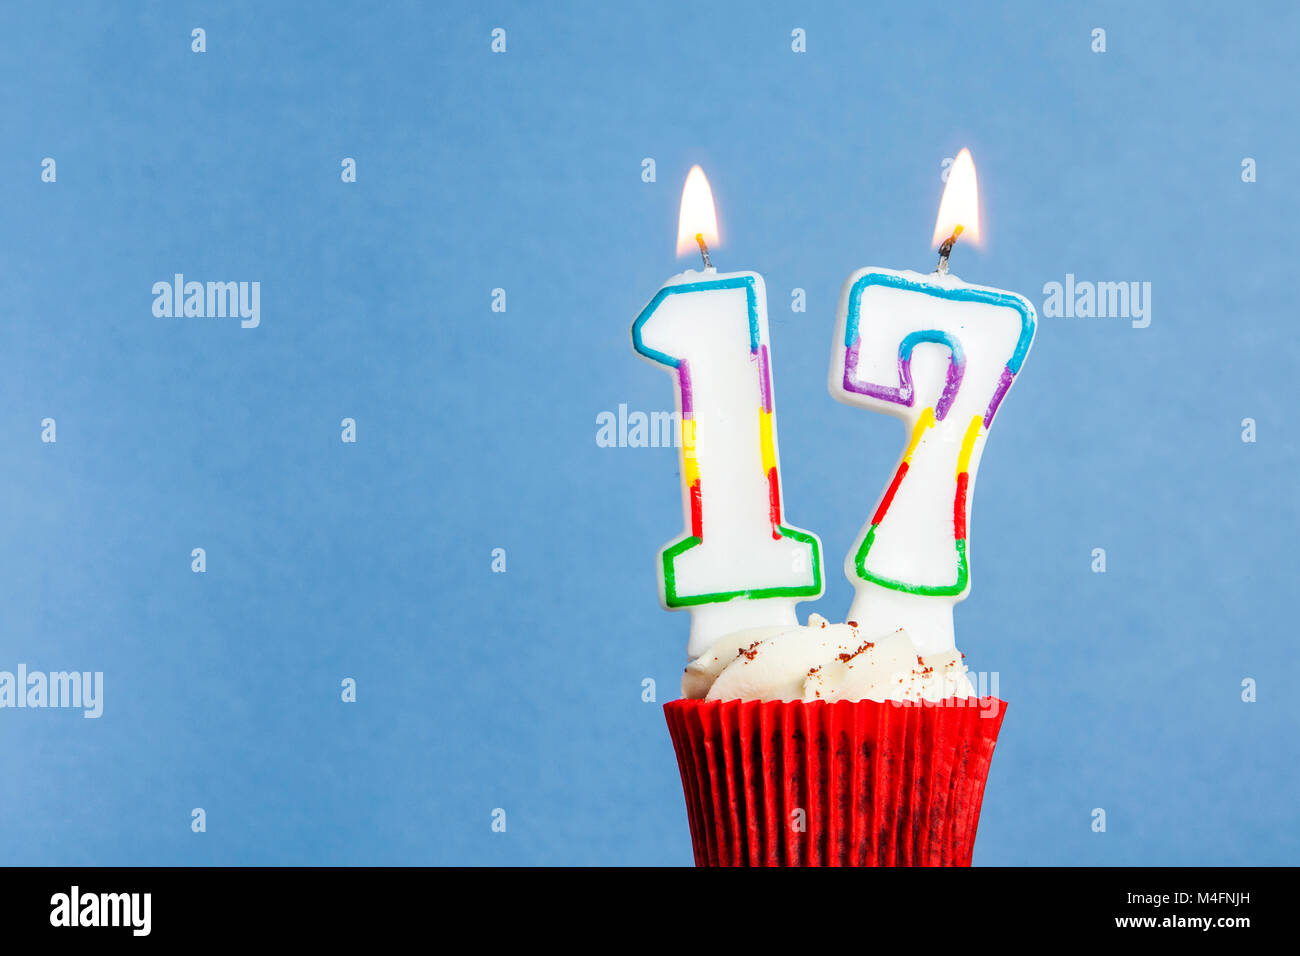 Superb Number 17 Birthday Candle In A Cupcake Against A Blue Background Funny Birthday Cards Online Alyptdamsfinfo